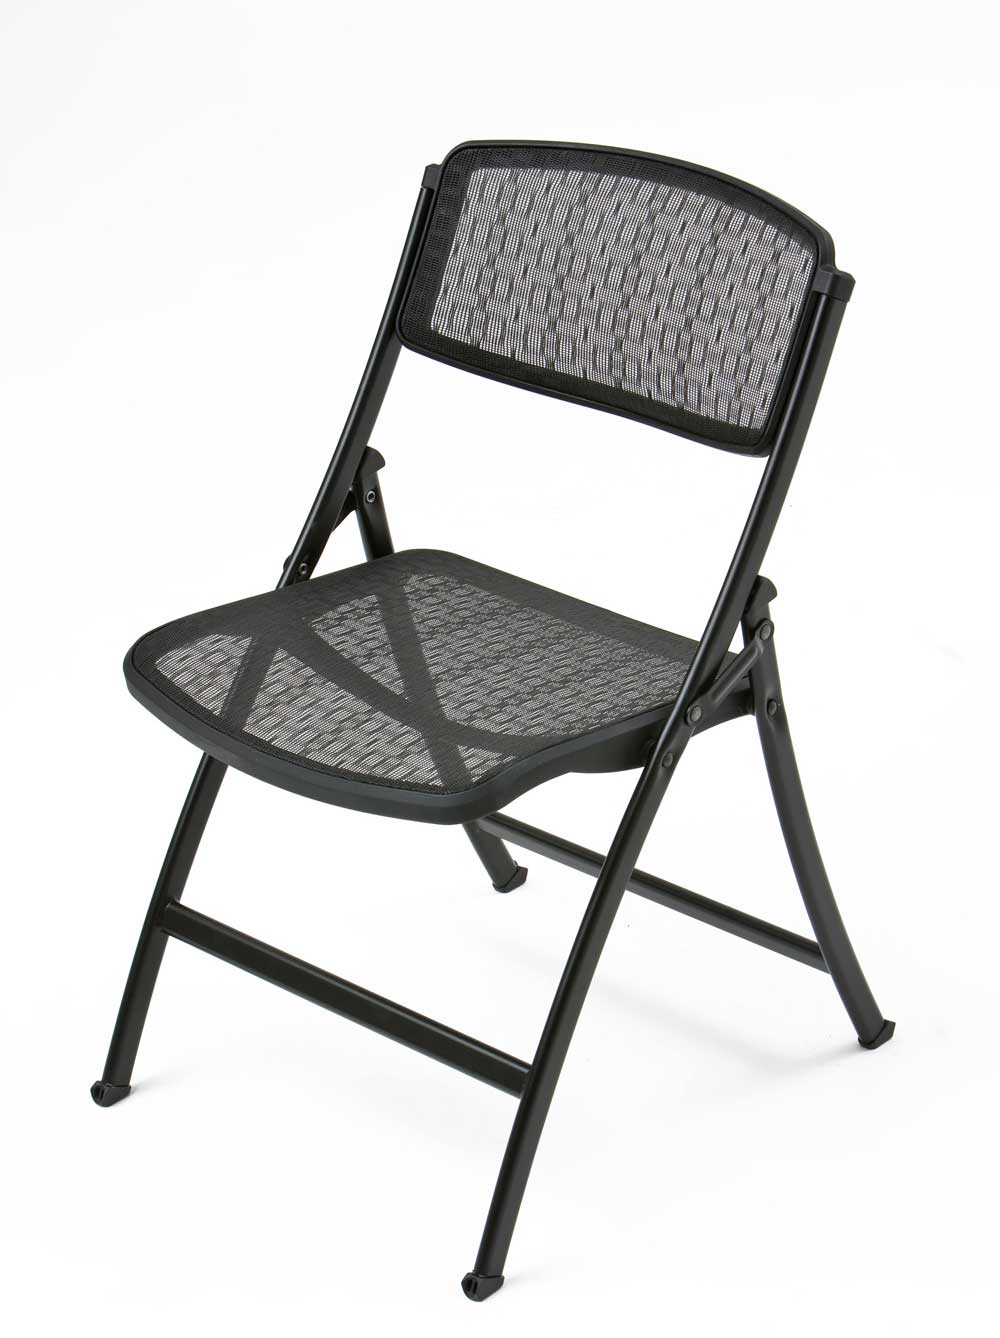 Lightweight Folding Chairs for Extra Pleasure